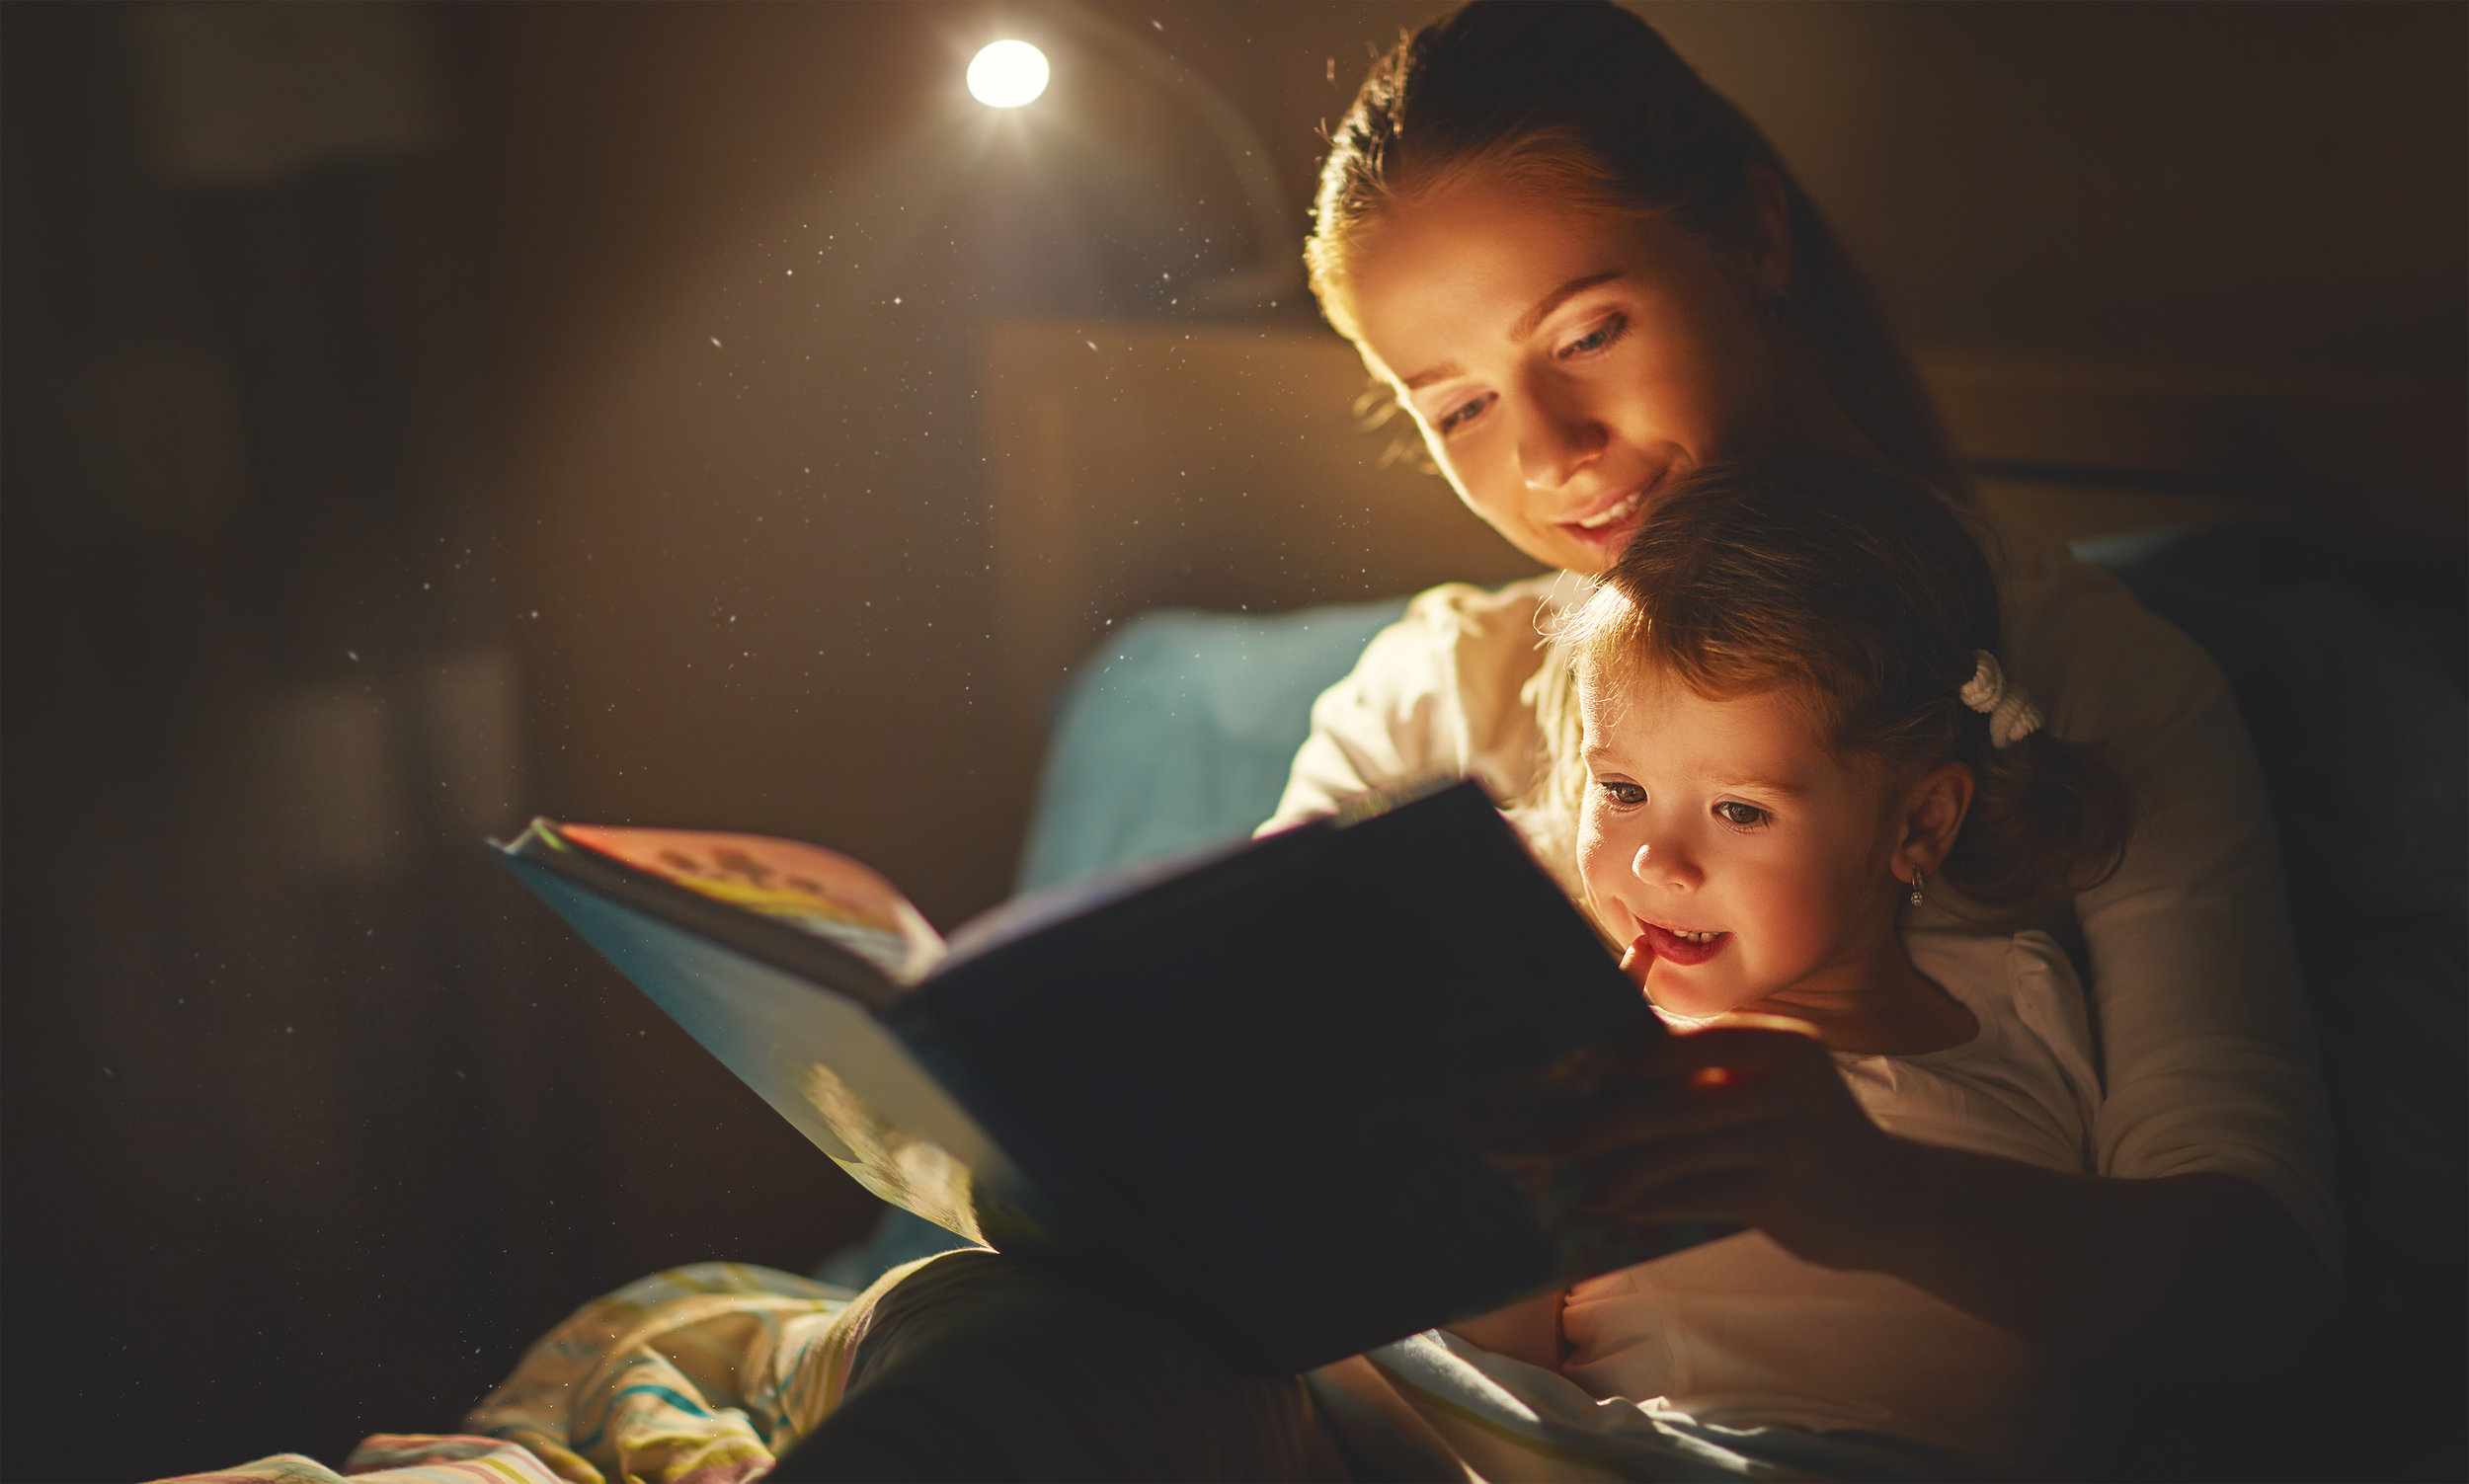 a mother and daughter reading a book together for a bedtime story session in bed